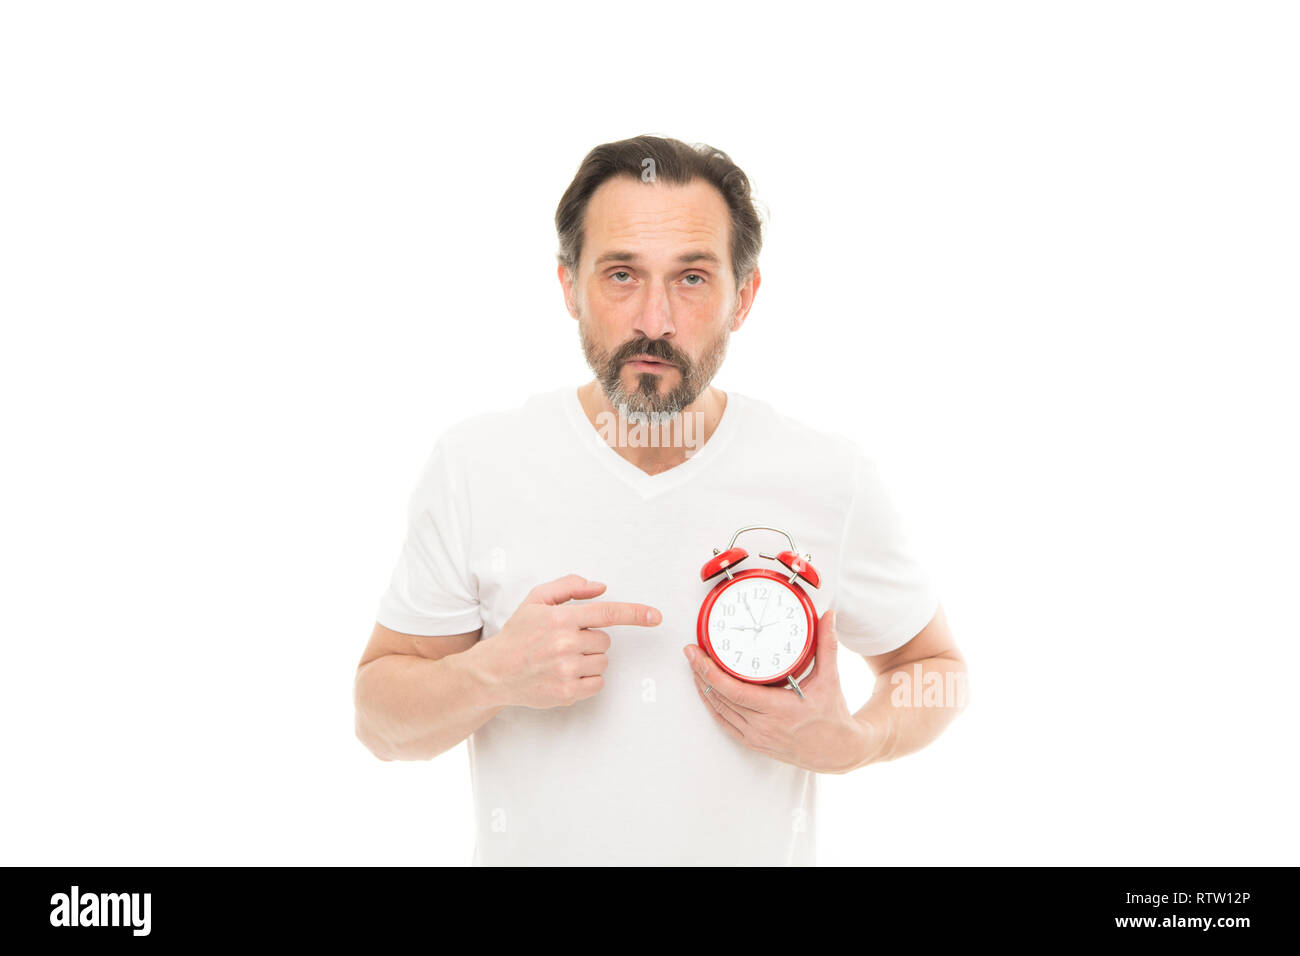 What time is it. Time management and discipline. Punctuality and responsibility. Man with clock on white background. Check time. Man hold alarm clock in hand. Guy bearded mature man worry about time. - Stock Image